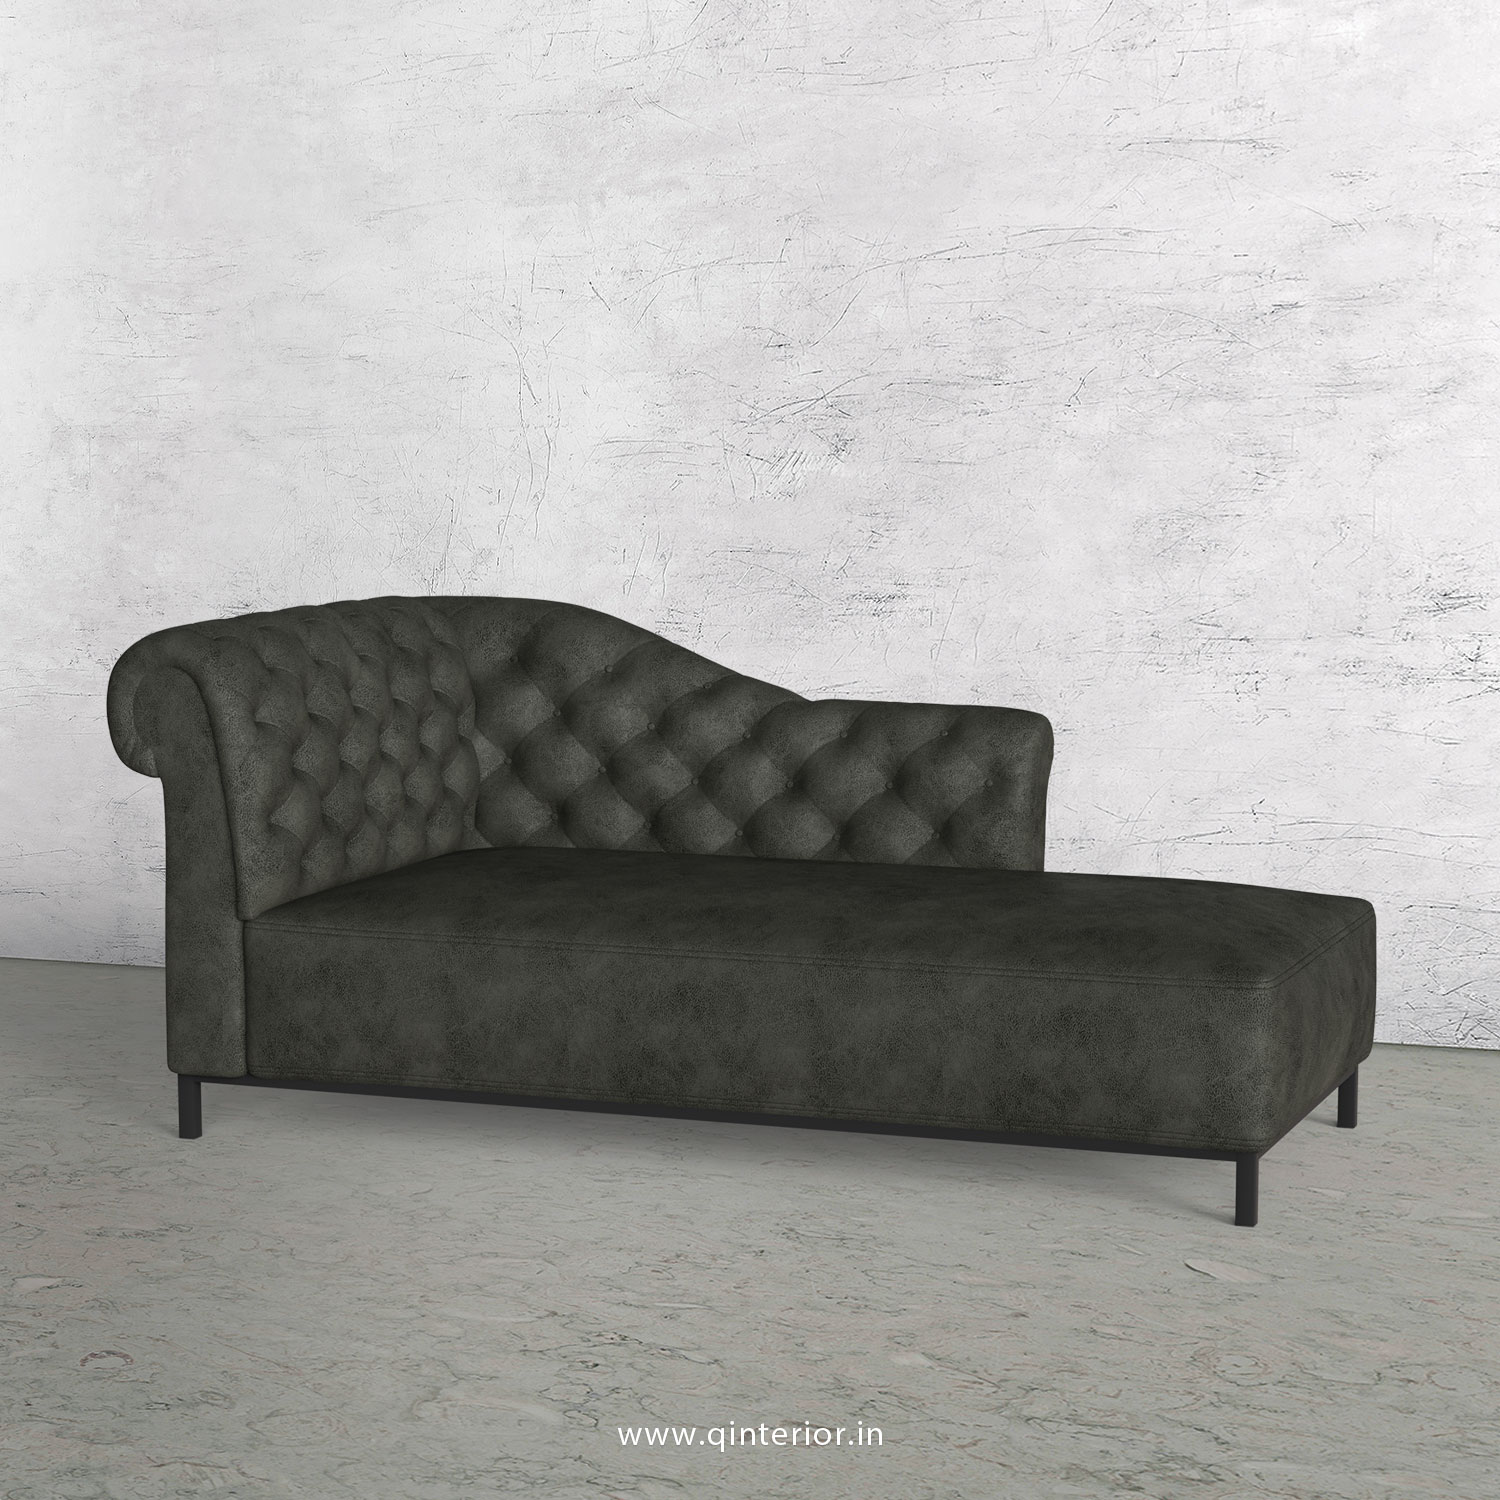 Amour Lounger Chaise in Fab Leather - LCH001 FL07